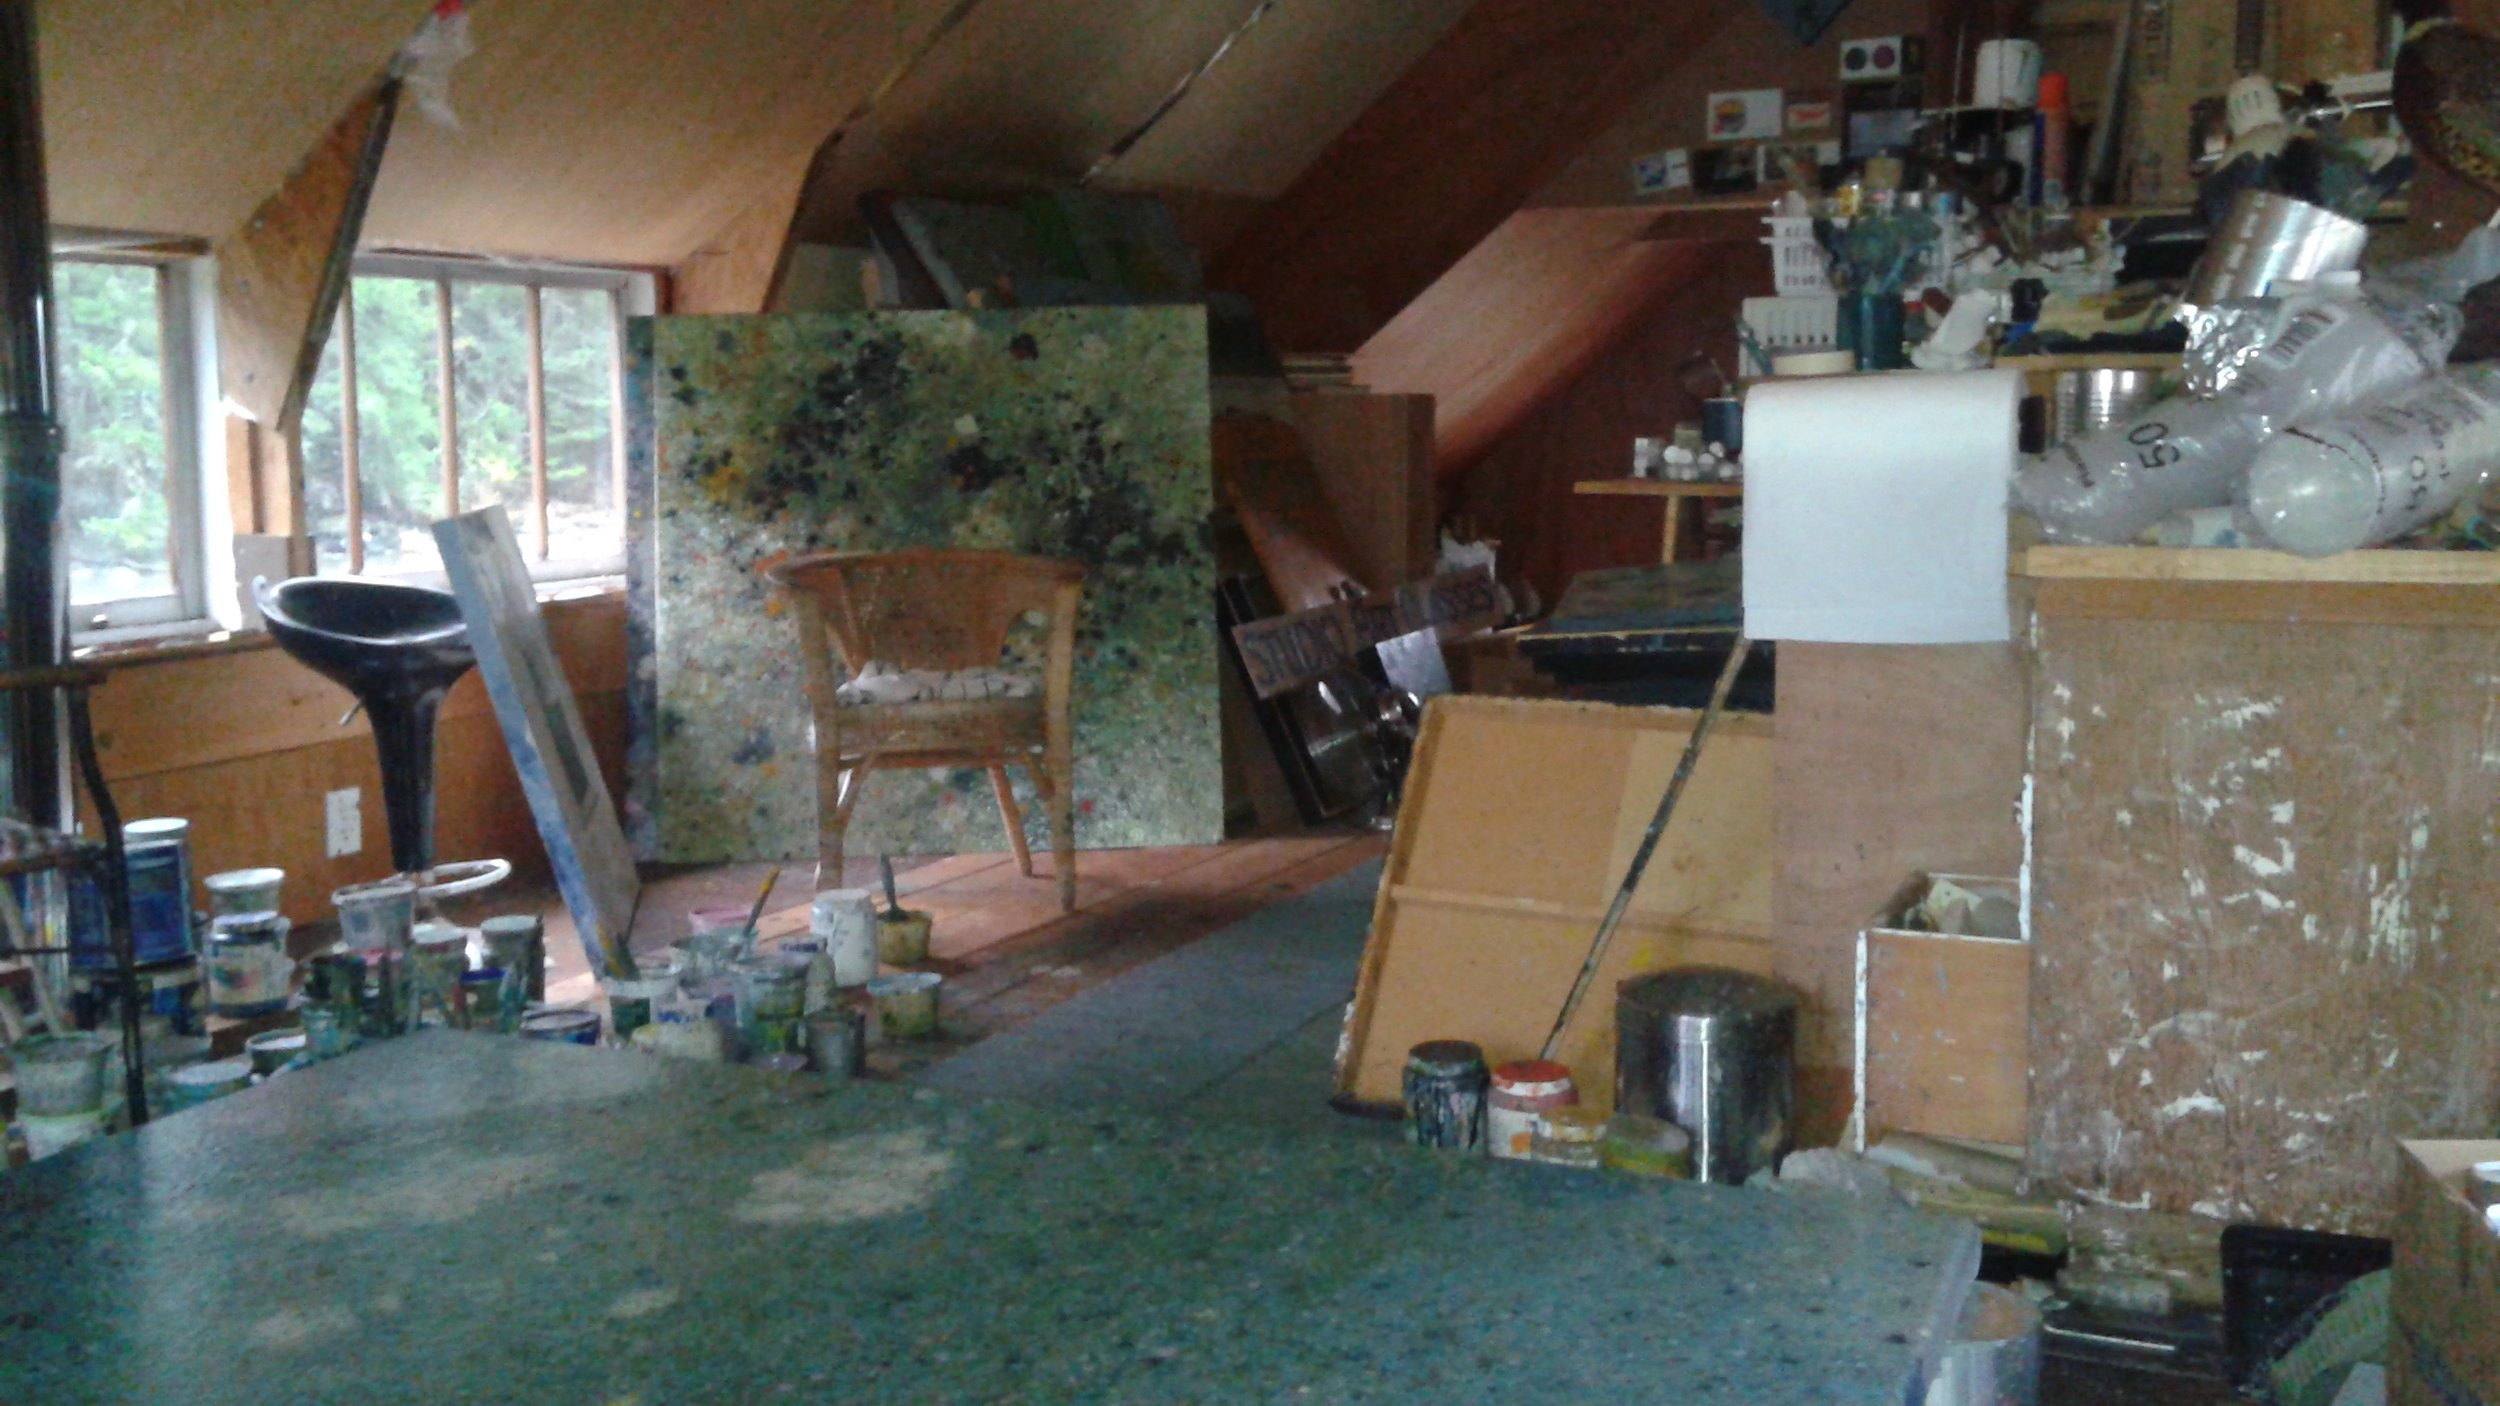 Keith Chisholm's studio in Cowichan Bay, BC.